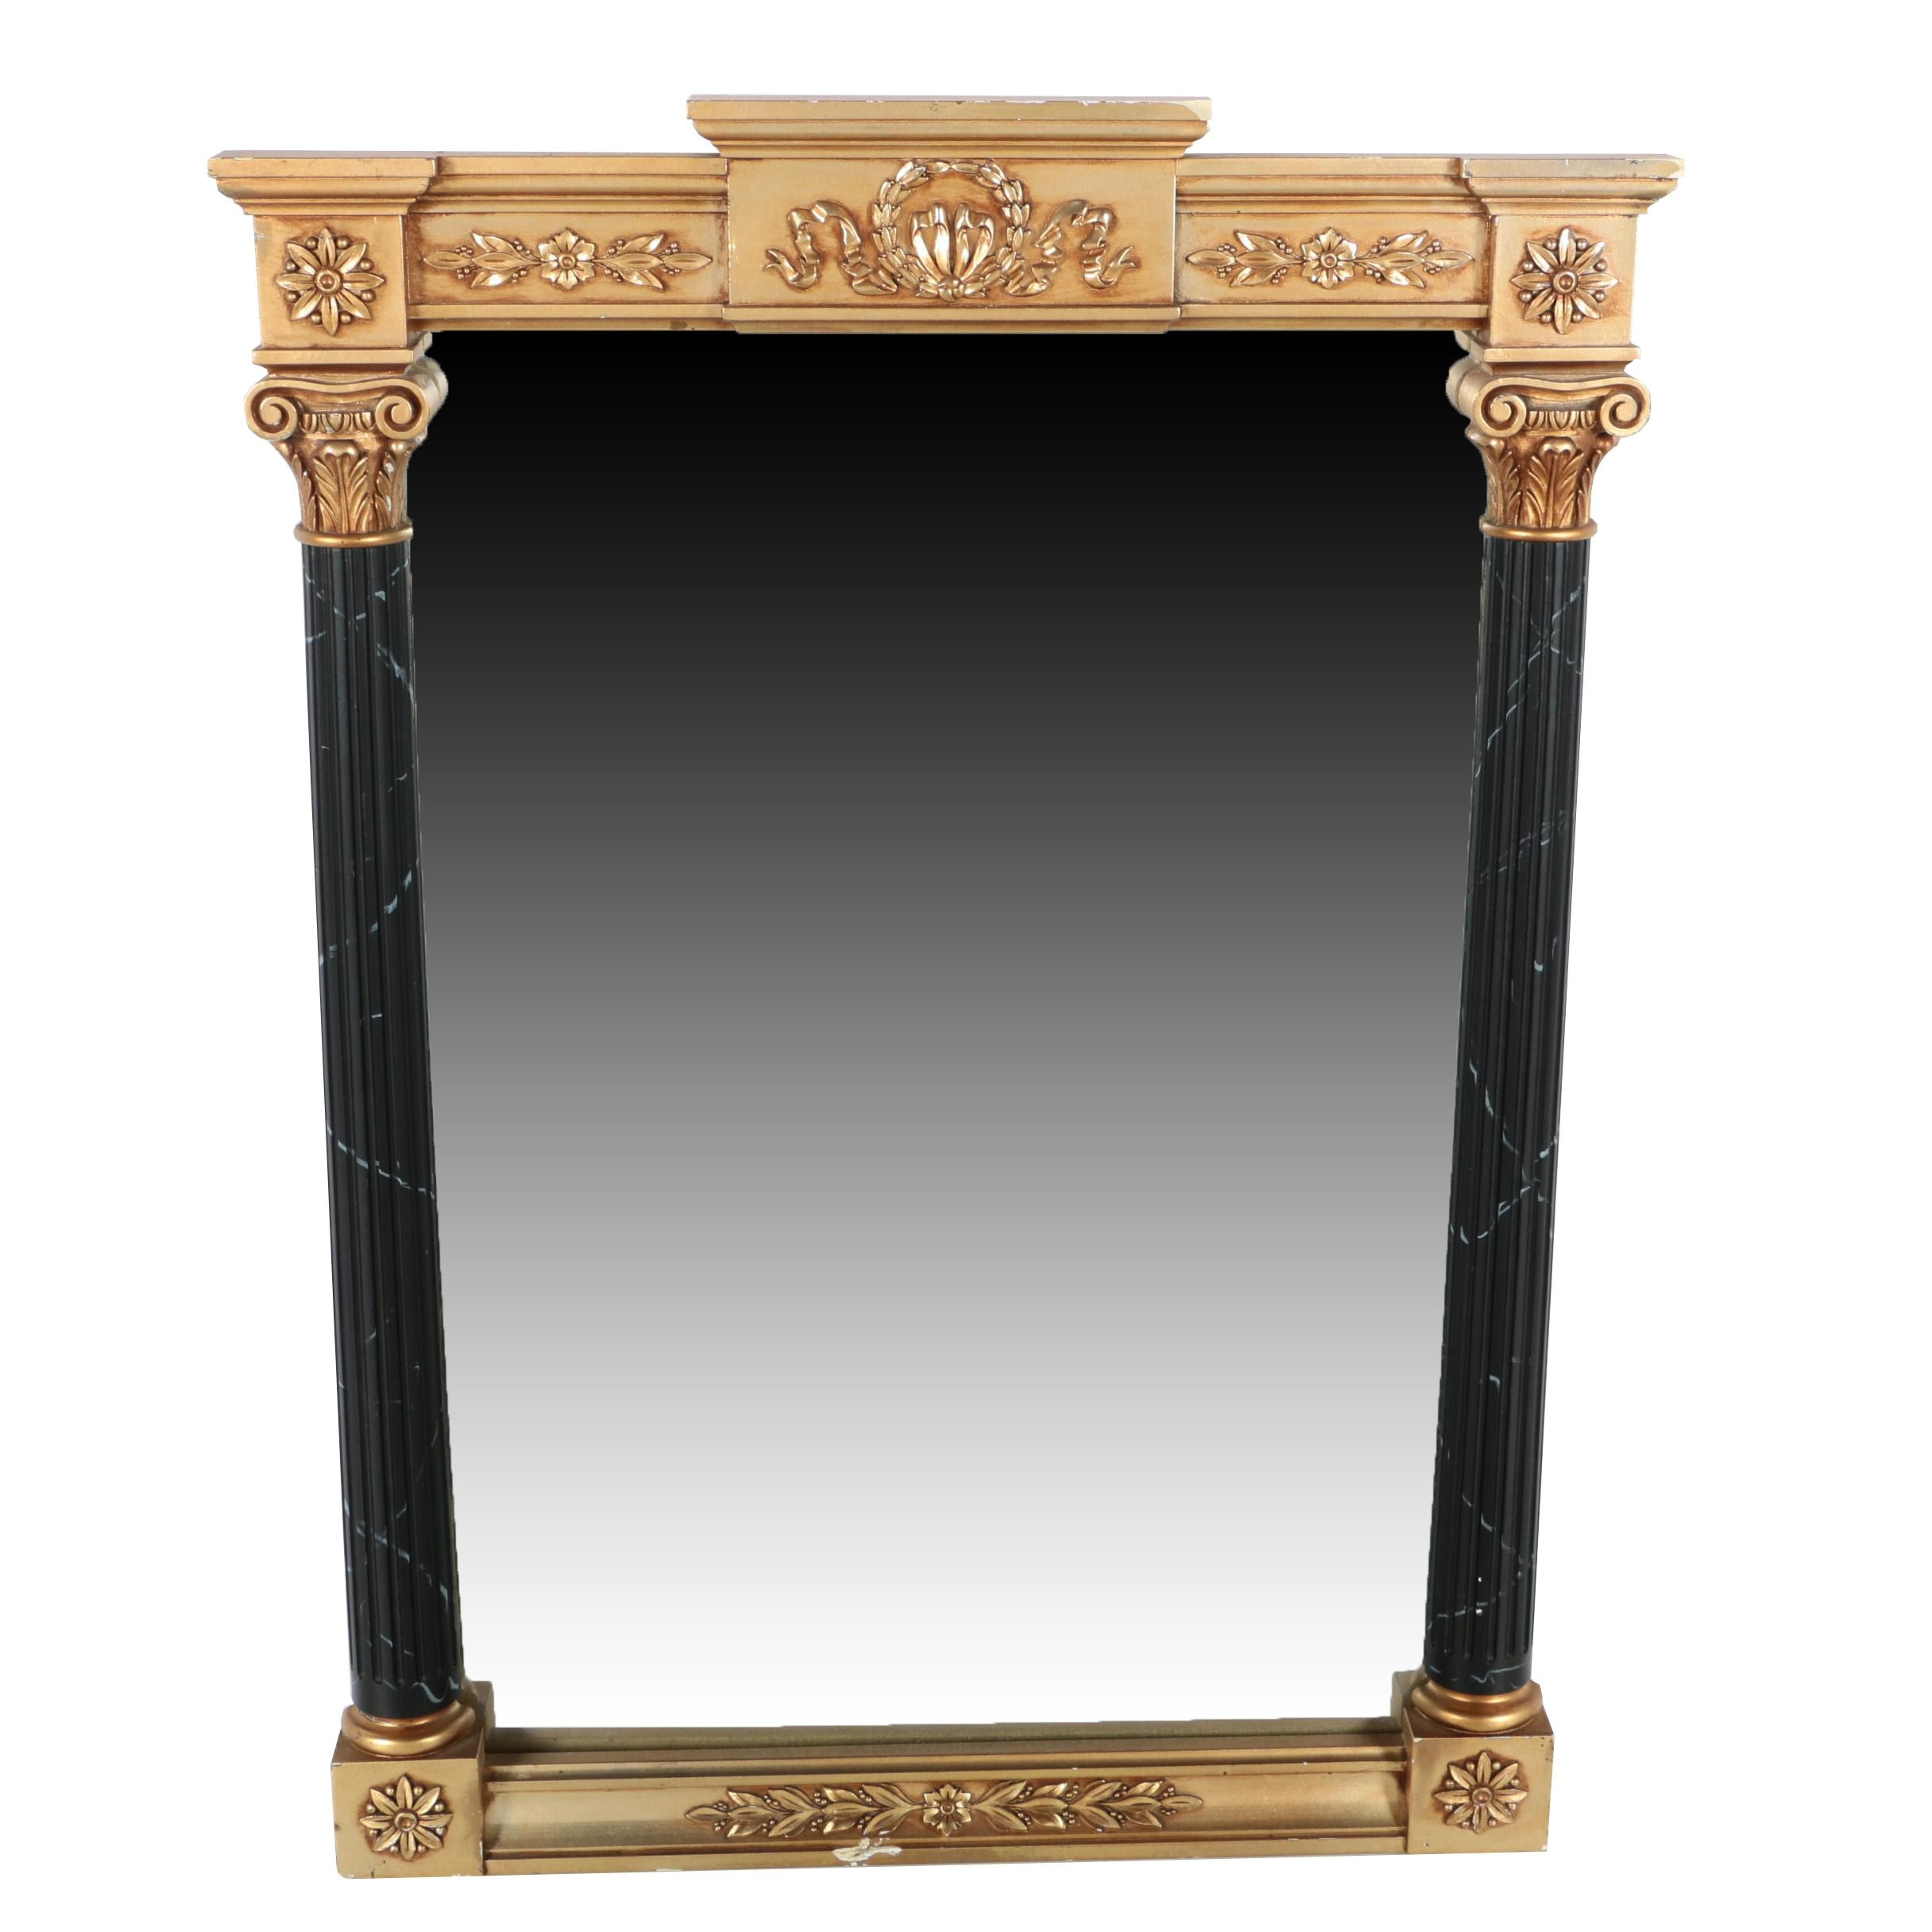 Neo-Classical Style Wall Mirror by The Willow Creek Collection